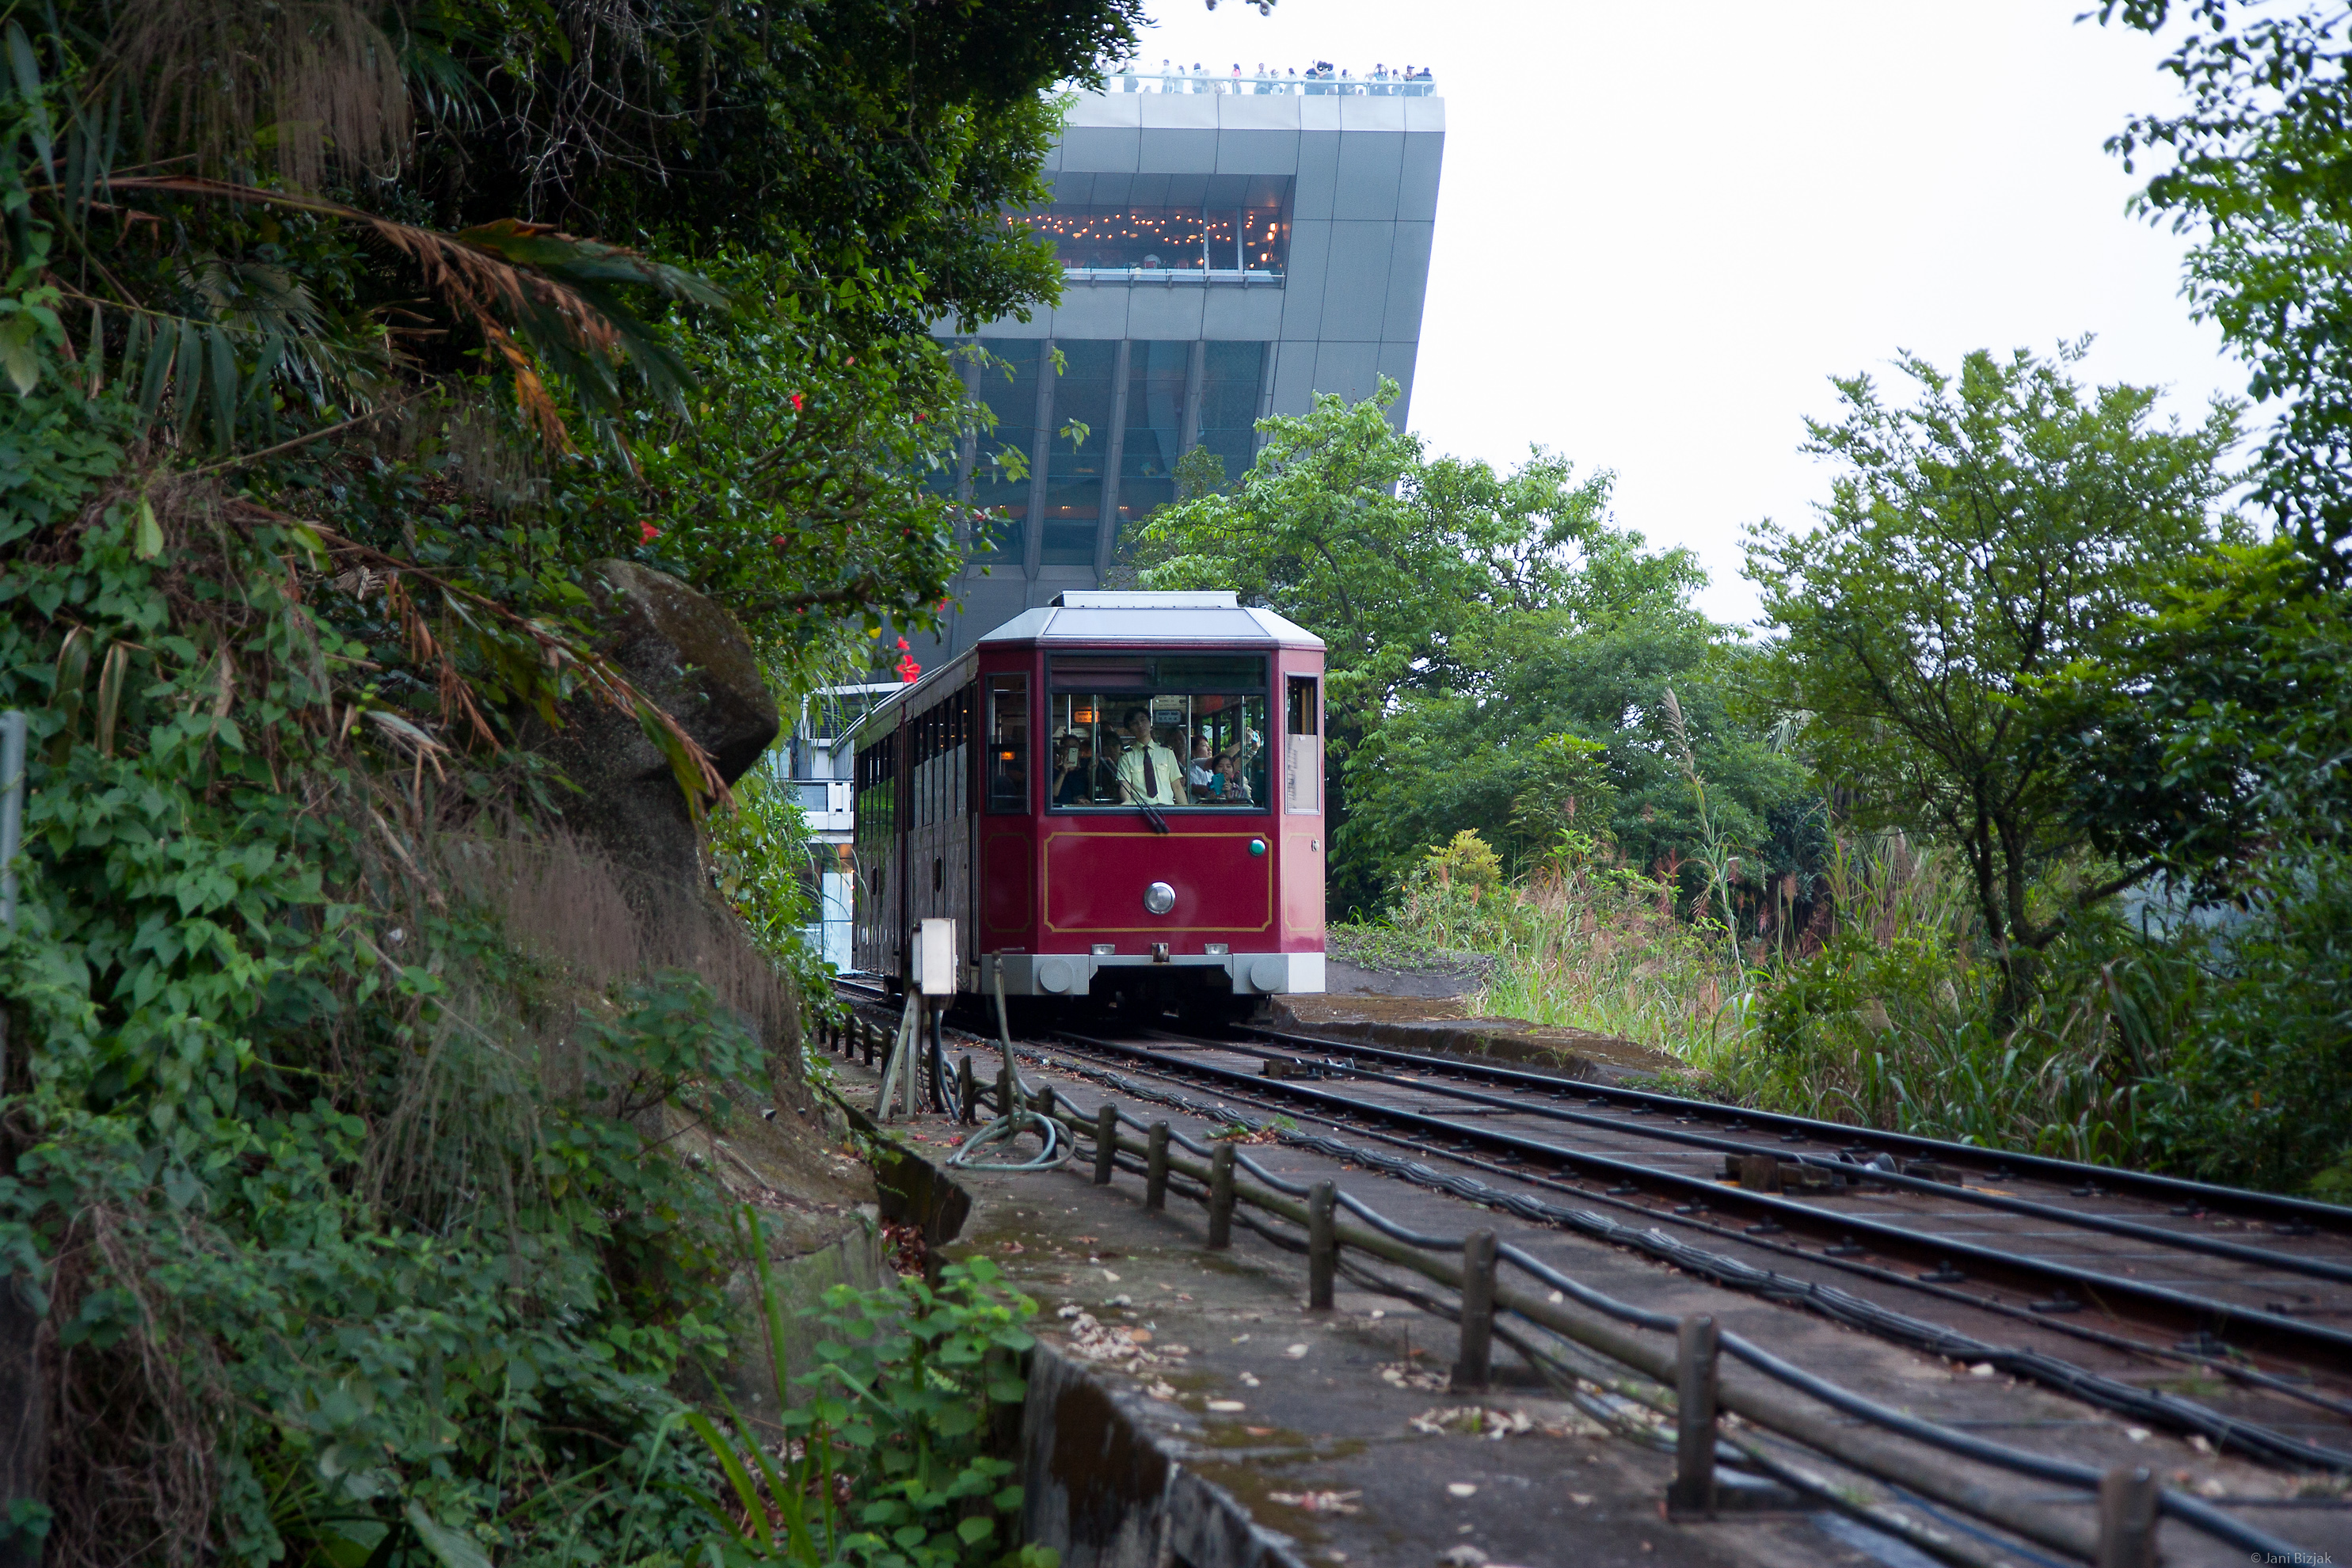 Tram that rides to the top of The Peak. Waiting time is about 3 hours. Walking time up is around 1h.